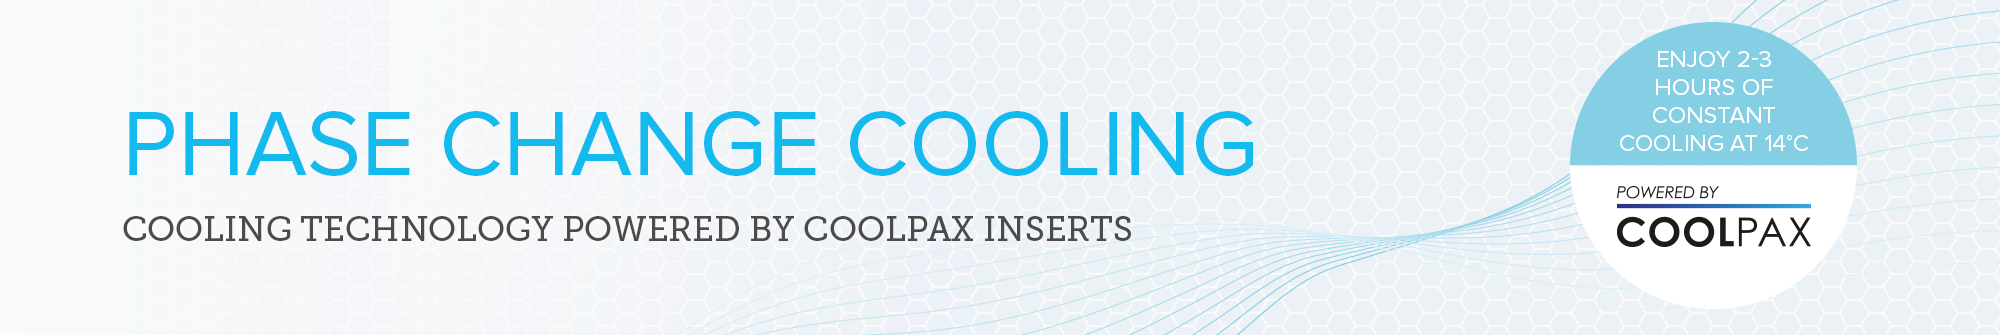 Phase change cooling products